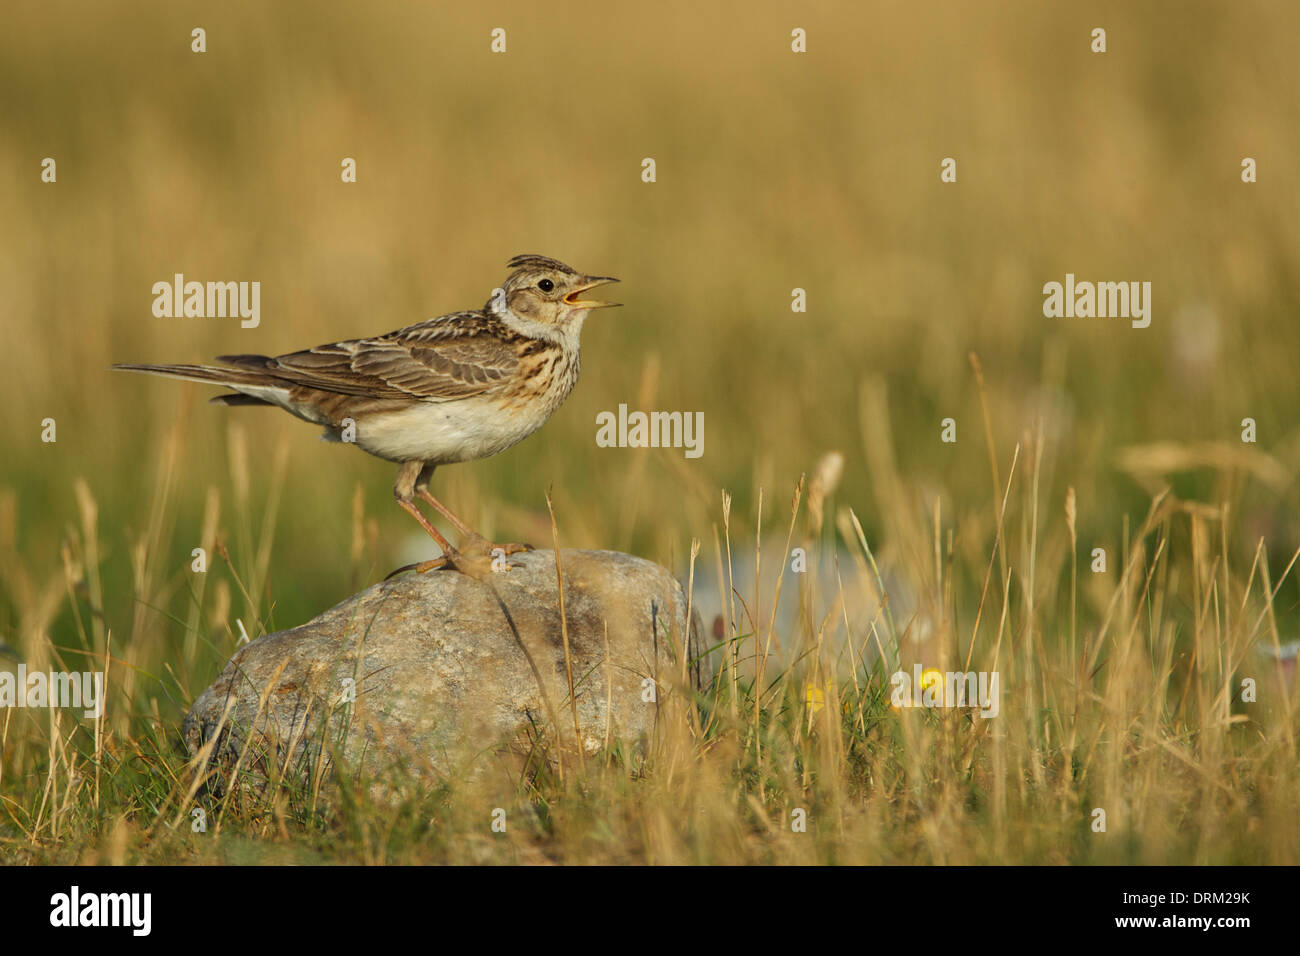 Skylark on rock singing 2©Jake Stephen Photography. - Stock Image